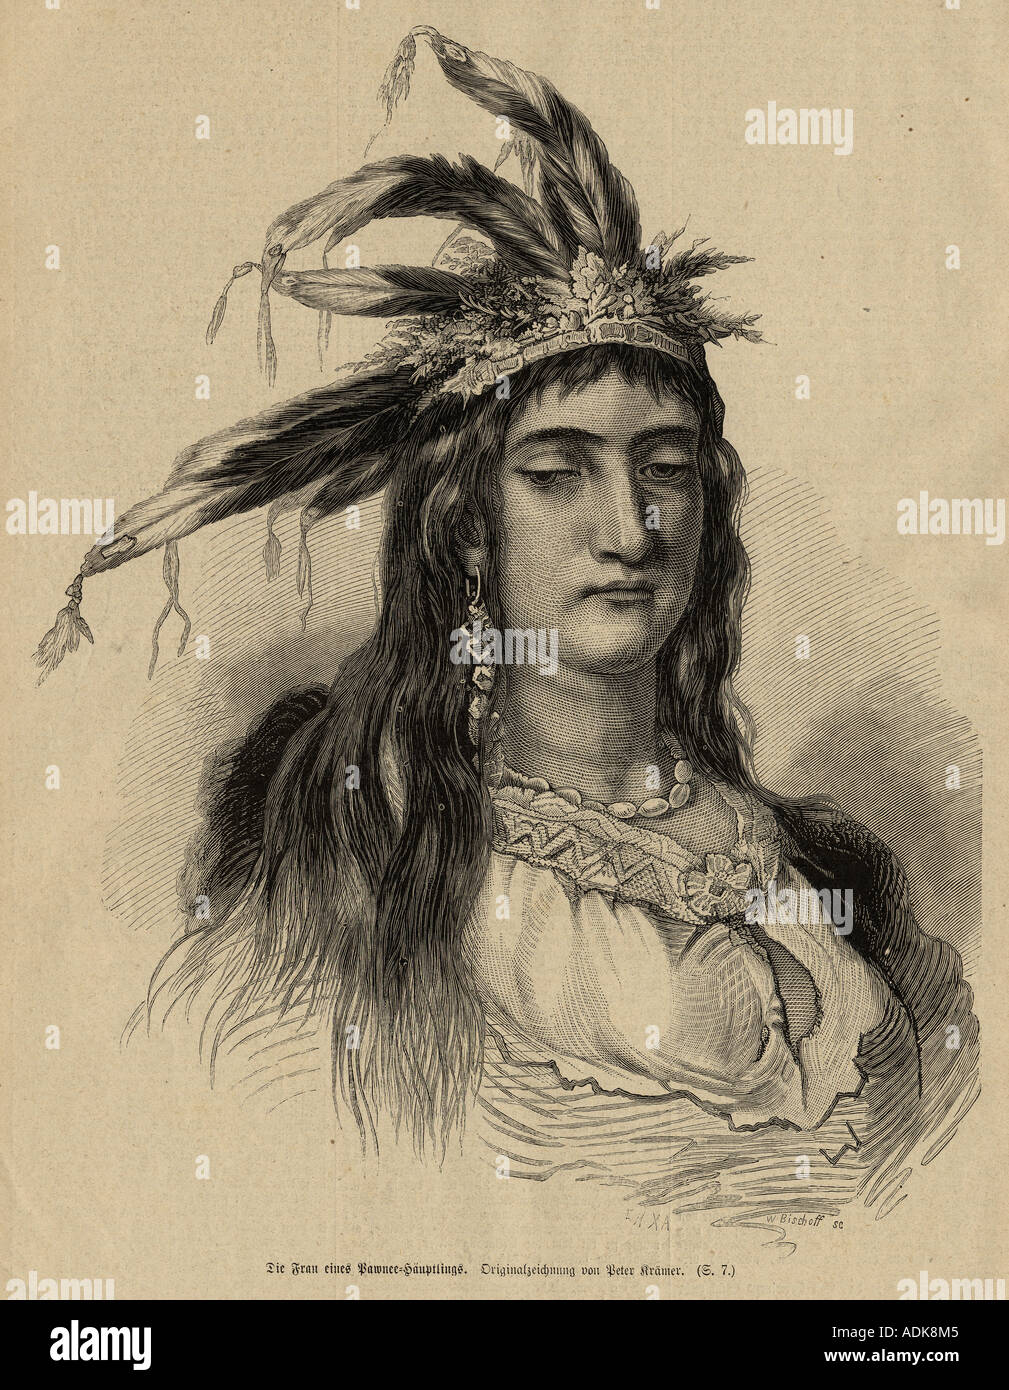 The woman of a Pawnee chieftain, engraving. - Stock Image